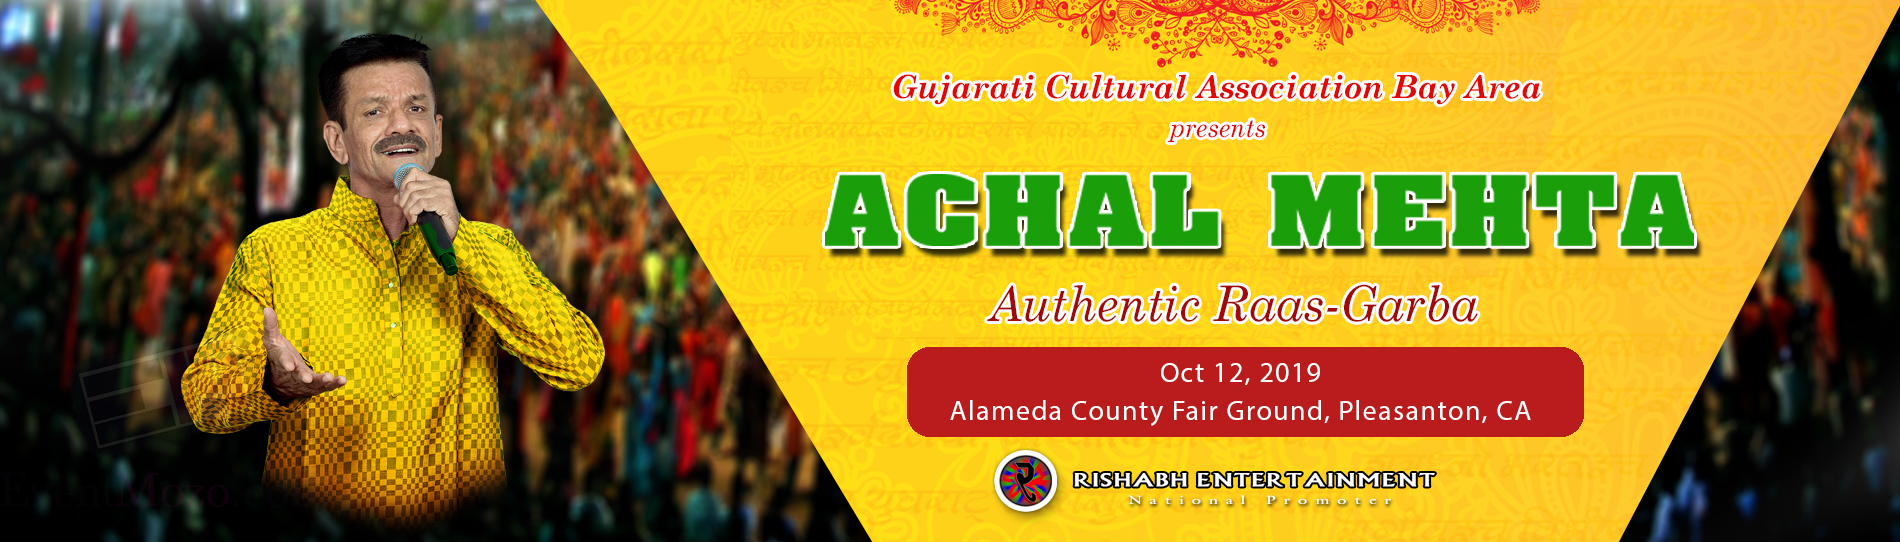 Achal Mehta Authentic Raas Garba 2019